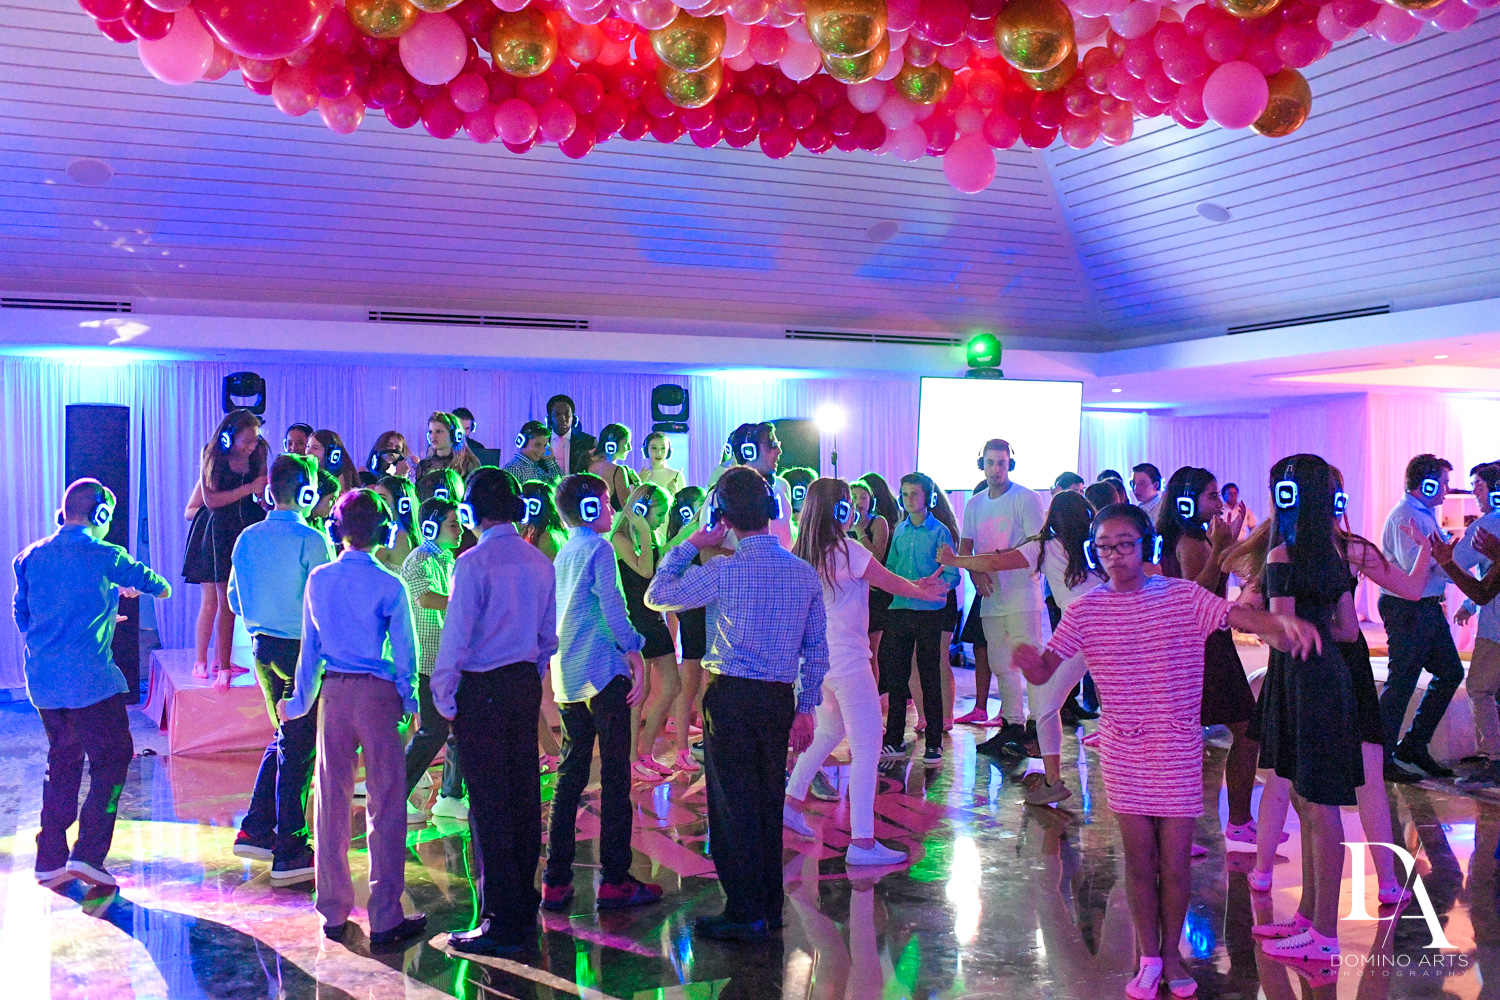 Latest trend Silent party with headphones at Bat Mitzvah at Saint Andrews Country Club South Florida by Domino Arts Photography